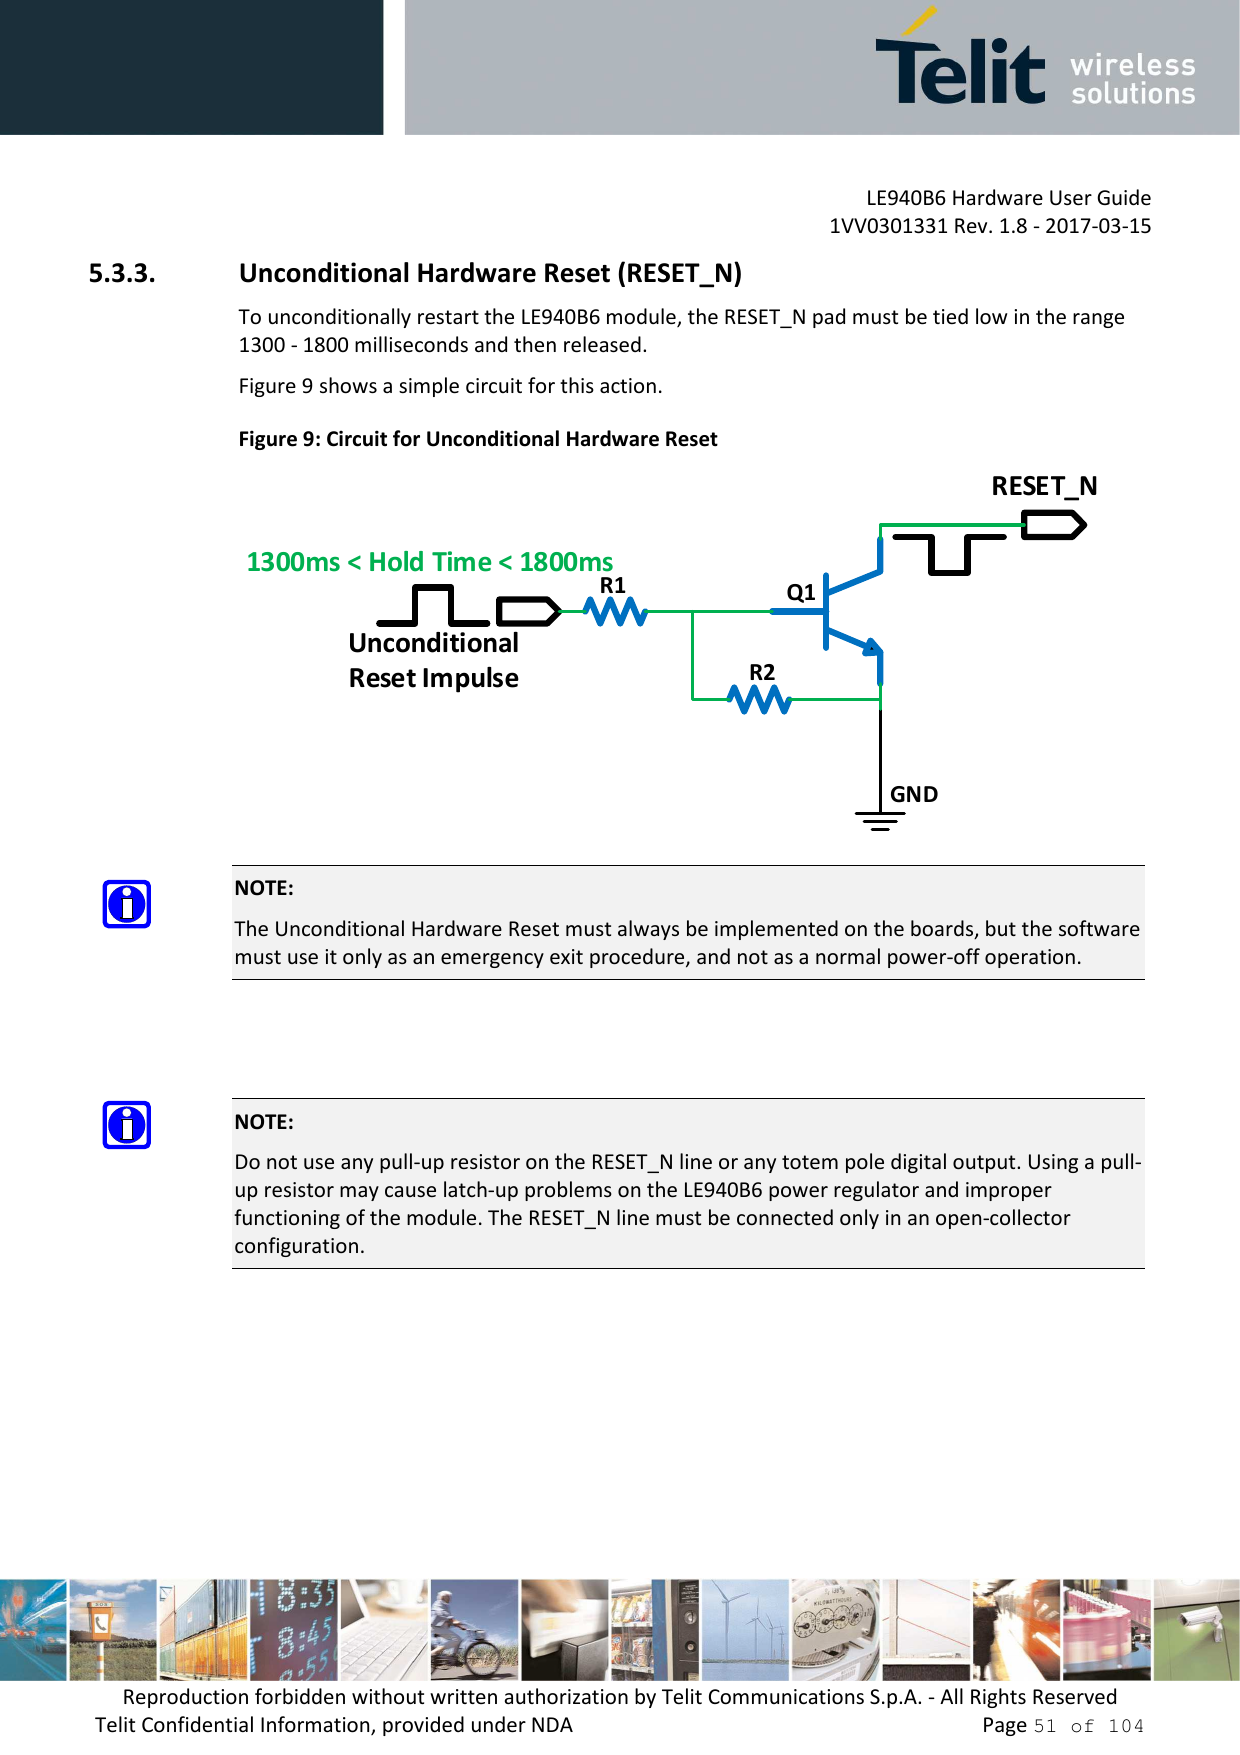 LE940B6 Hardware User Guide     1VV0301331 Rev. 1.8 - 2017-03-15 Reproduction forbidden without written authorization by Telit Communications S.p.A. - All Rights Reserved Telit Confidential Information, provided under NDA                 Page 51 of 104 5.3.3. Unconditional Hardware Reset (RESET_N) To unconditionally restart the LE940B6 module, the RESET_N pad must be tied low in the range 1300 - 1800 milliseconds and then released. Figure 9 shows a simple circuit for this action. Figure 9: Circuit for Unconditional Hardware Reset GNDR1R2Q1UnconditionalReset Impulse1300ms < Hold Time < 1800msRESET_N     NOTE: The Unconditional Hardware Reset must always be implemented on the boards, but the software must use it only as an emergency exit procedure, and not as a normal power-off operation.  NOTE: Do not use any pull-up resistor on the RESET_N line or any totem pole digital output. Using a pull-up resistor may cause latch-up problems on the LE940B6 power regulator and improper functioning of the module. The RESET_N line must be connected only in an open-collector configuration.